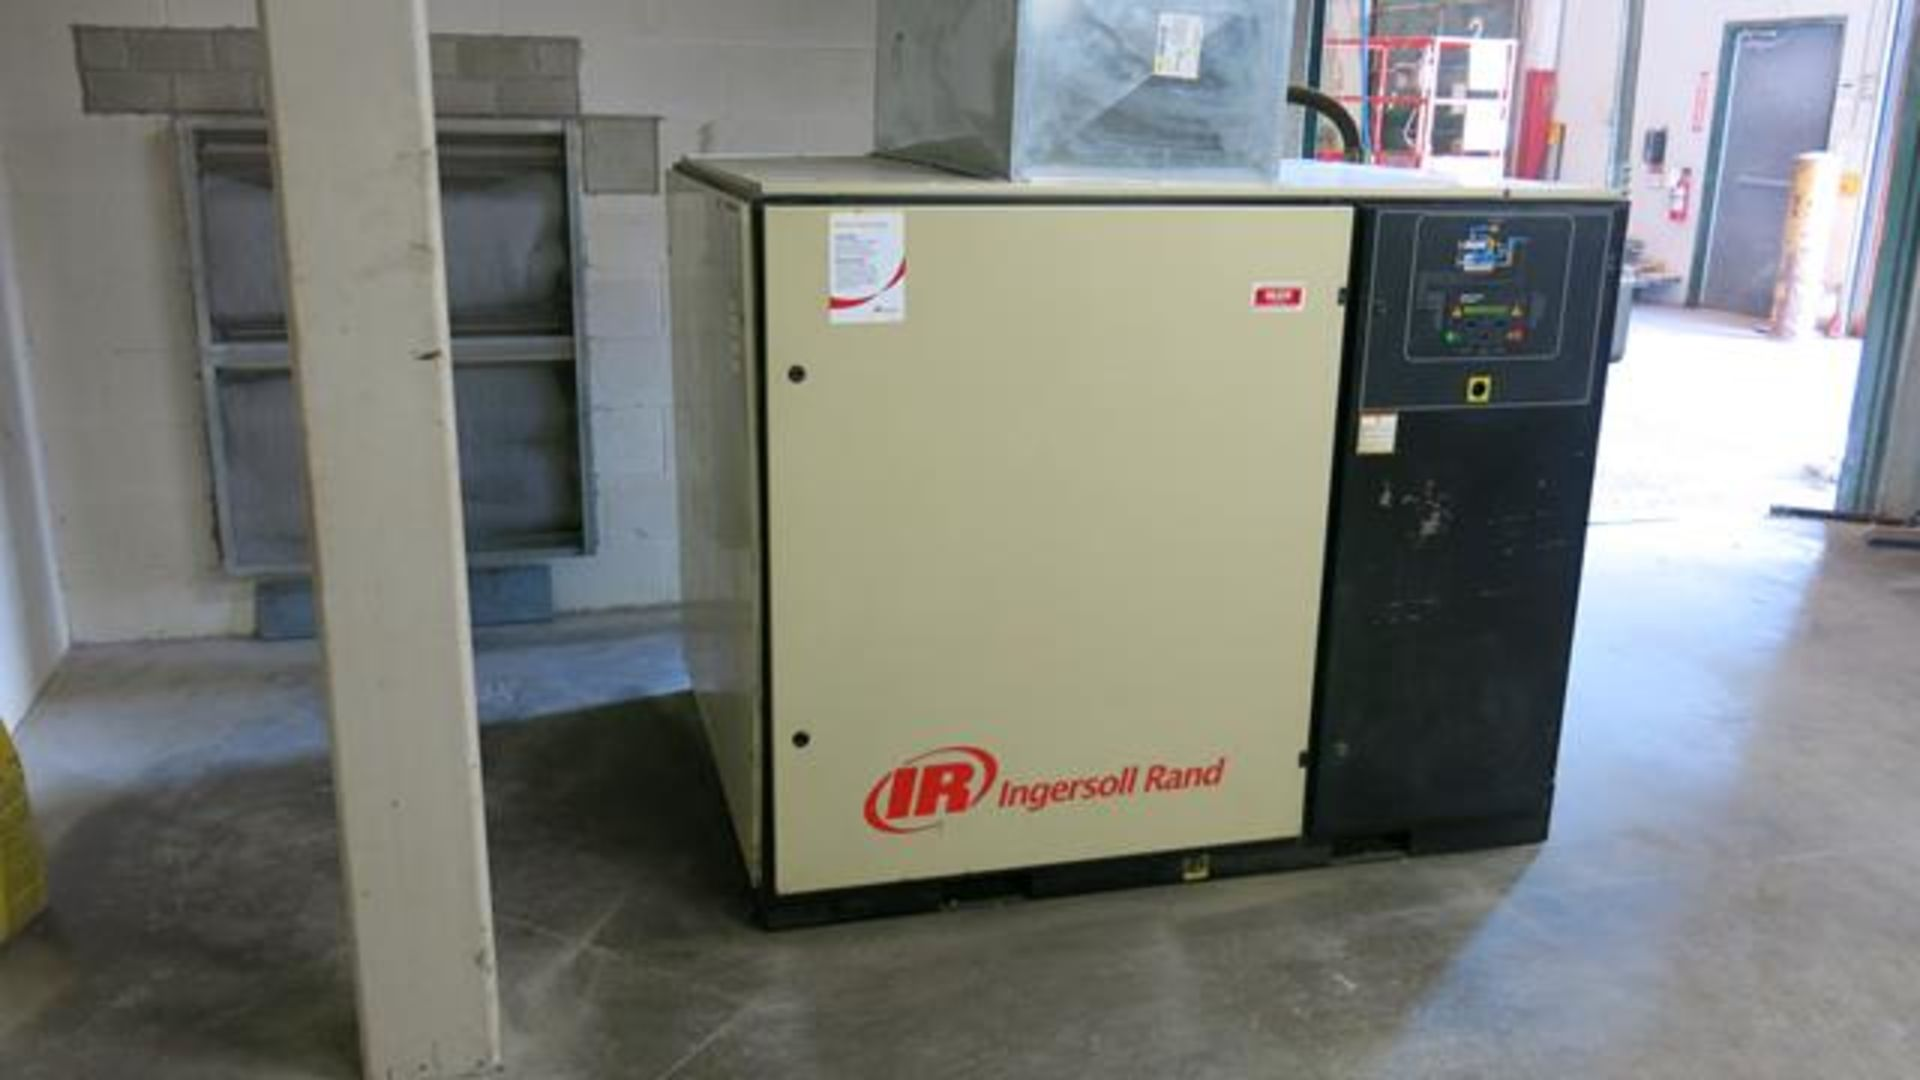 Lot 288 - INGERSOLL-RAND, UP6-50PE-125, 50 HP, ROTARY SCREW, AIR COMPRESSOR, 30,044 LOAD HOURS, 51,340 RUN